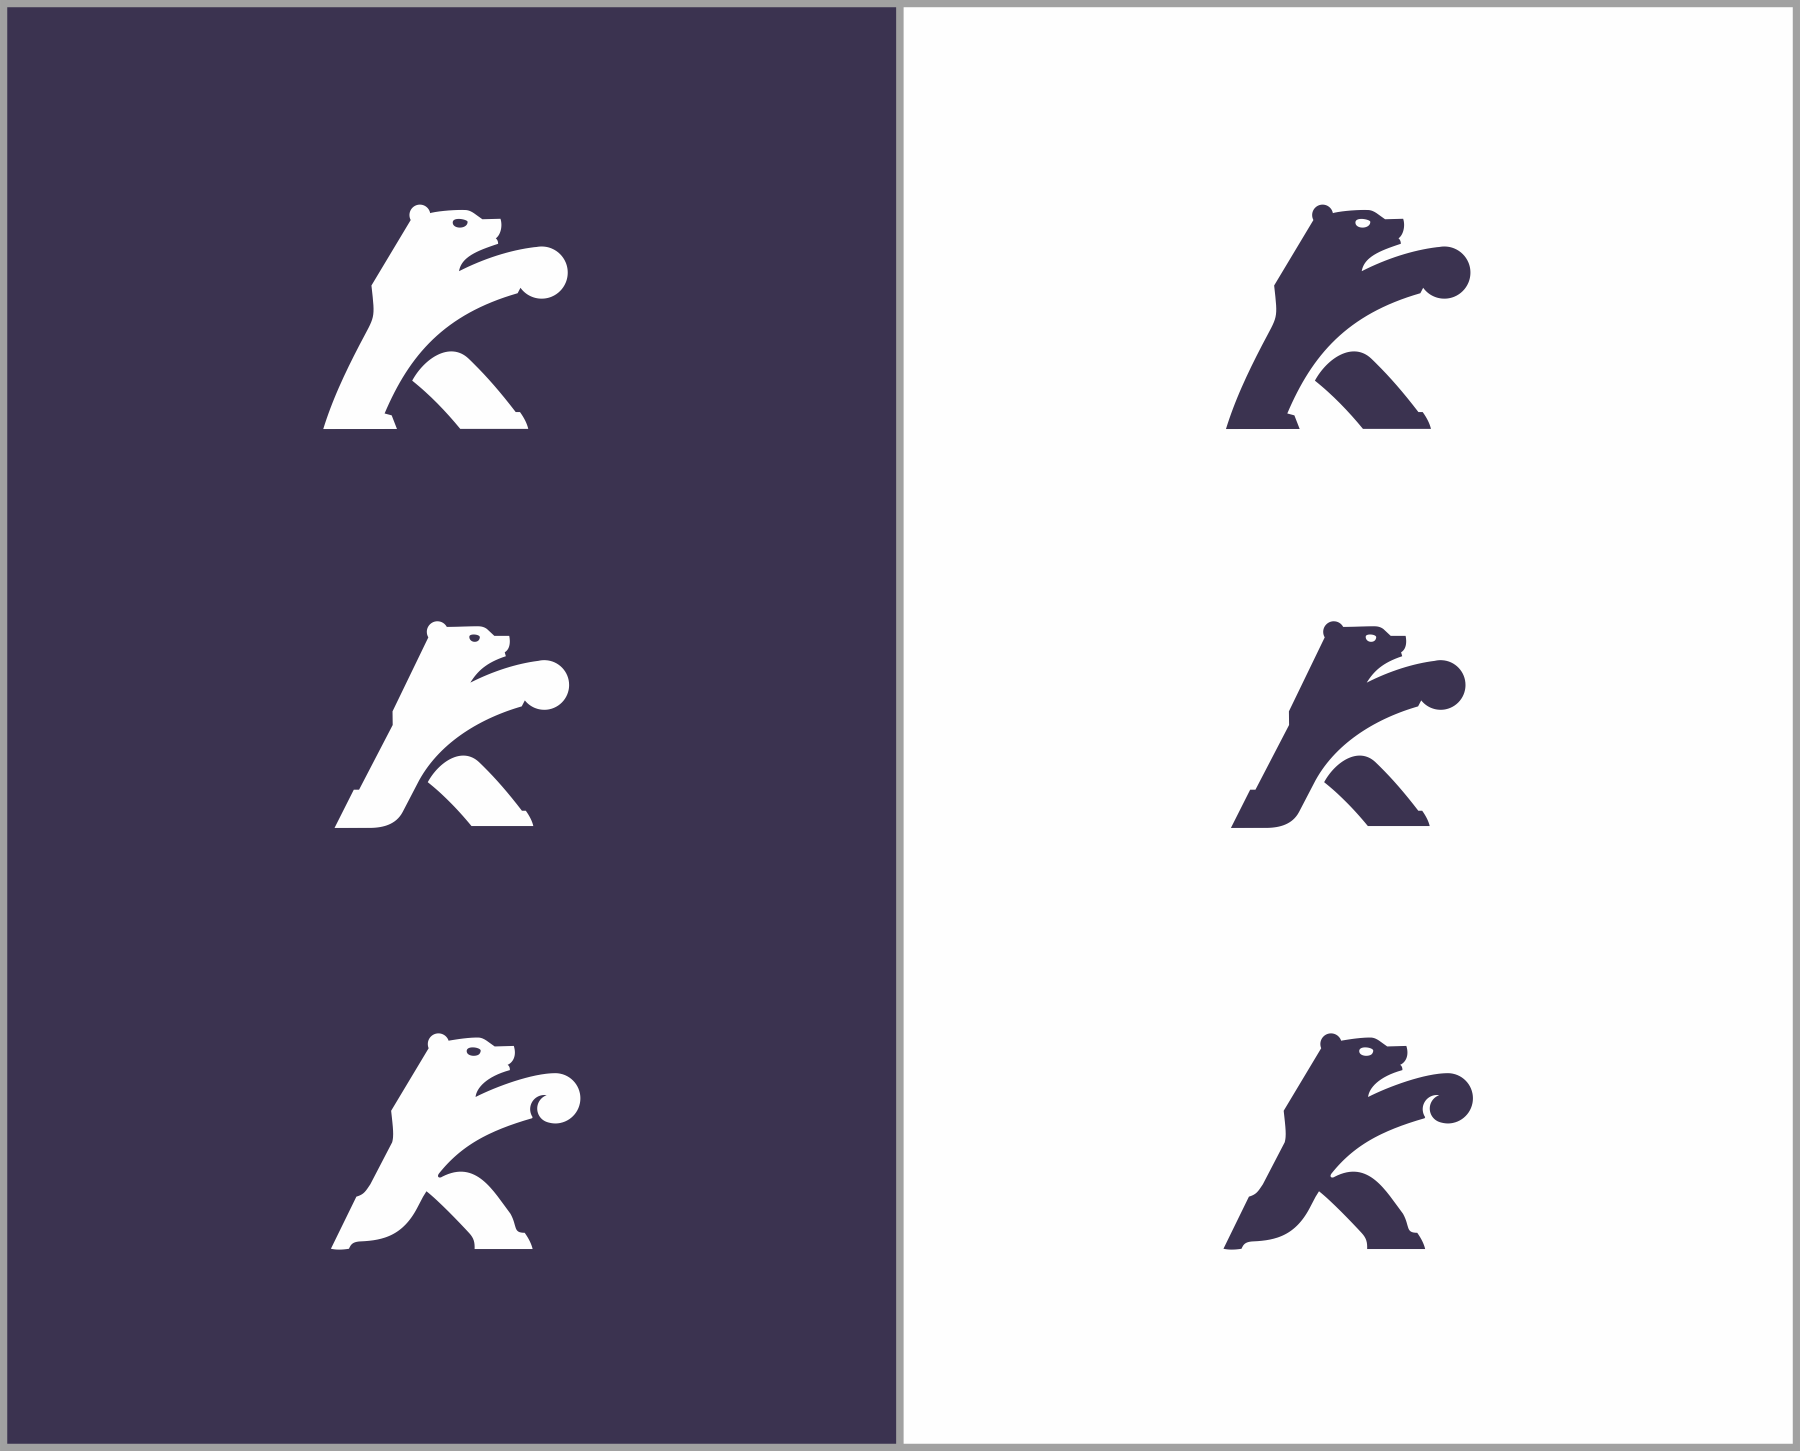 Our logo needs some PUNCH — kickboxing studio for women